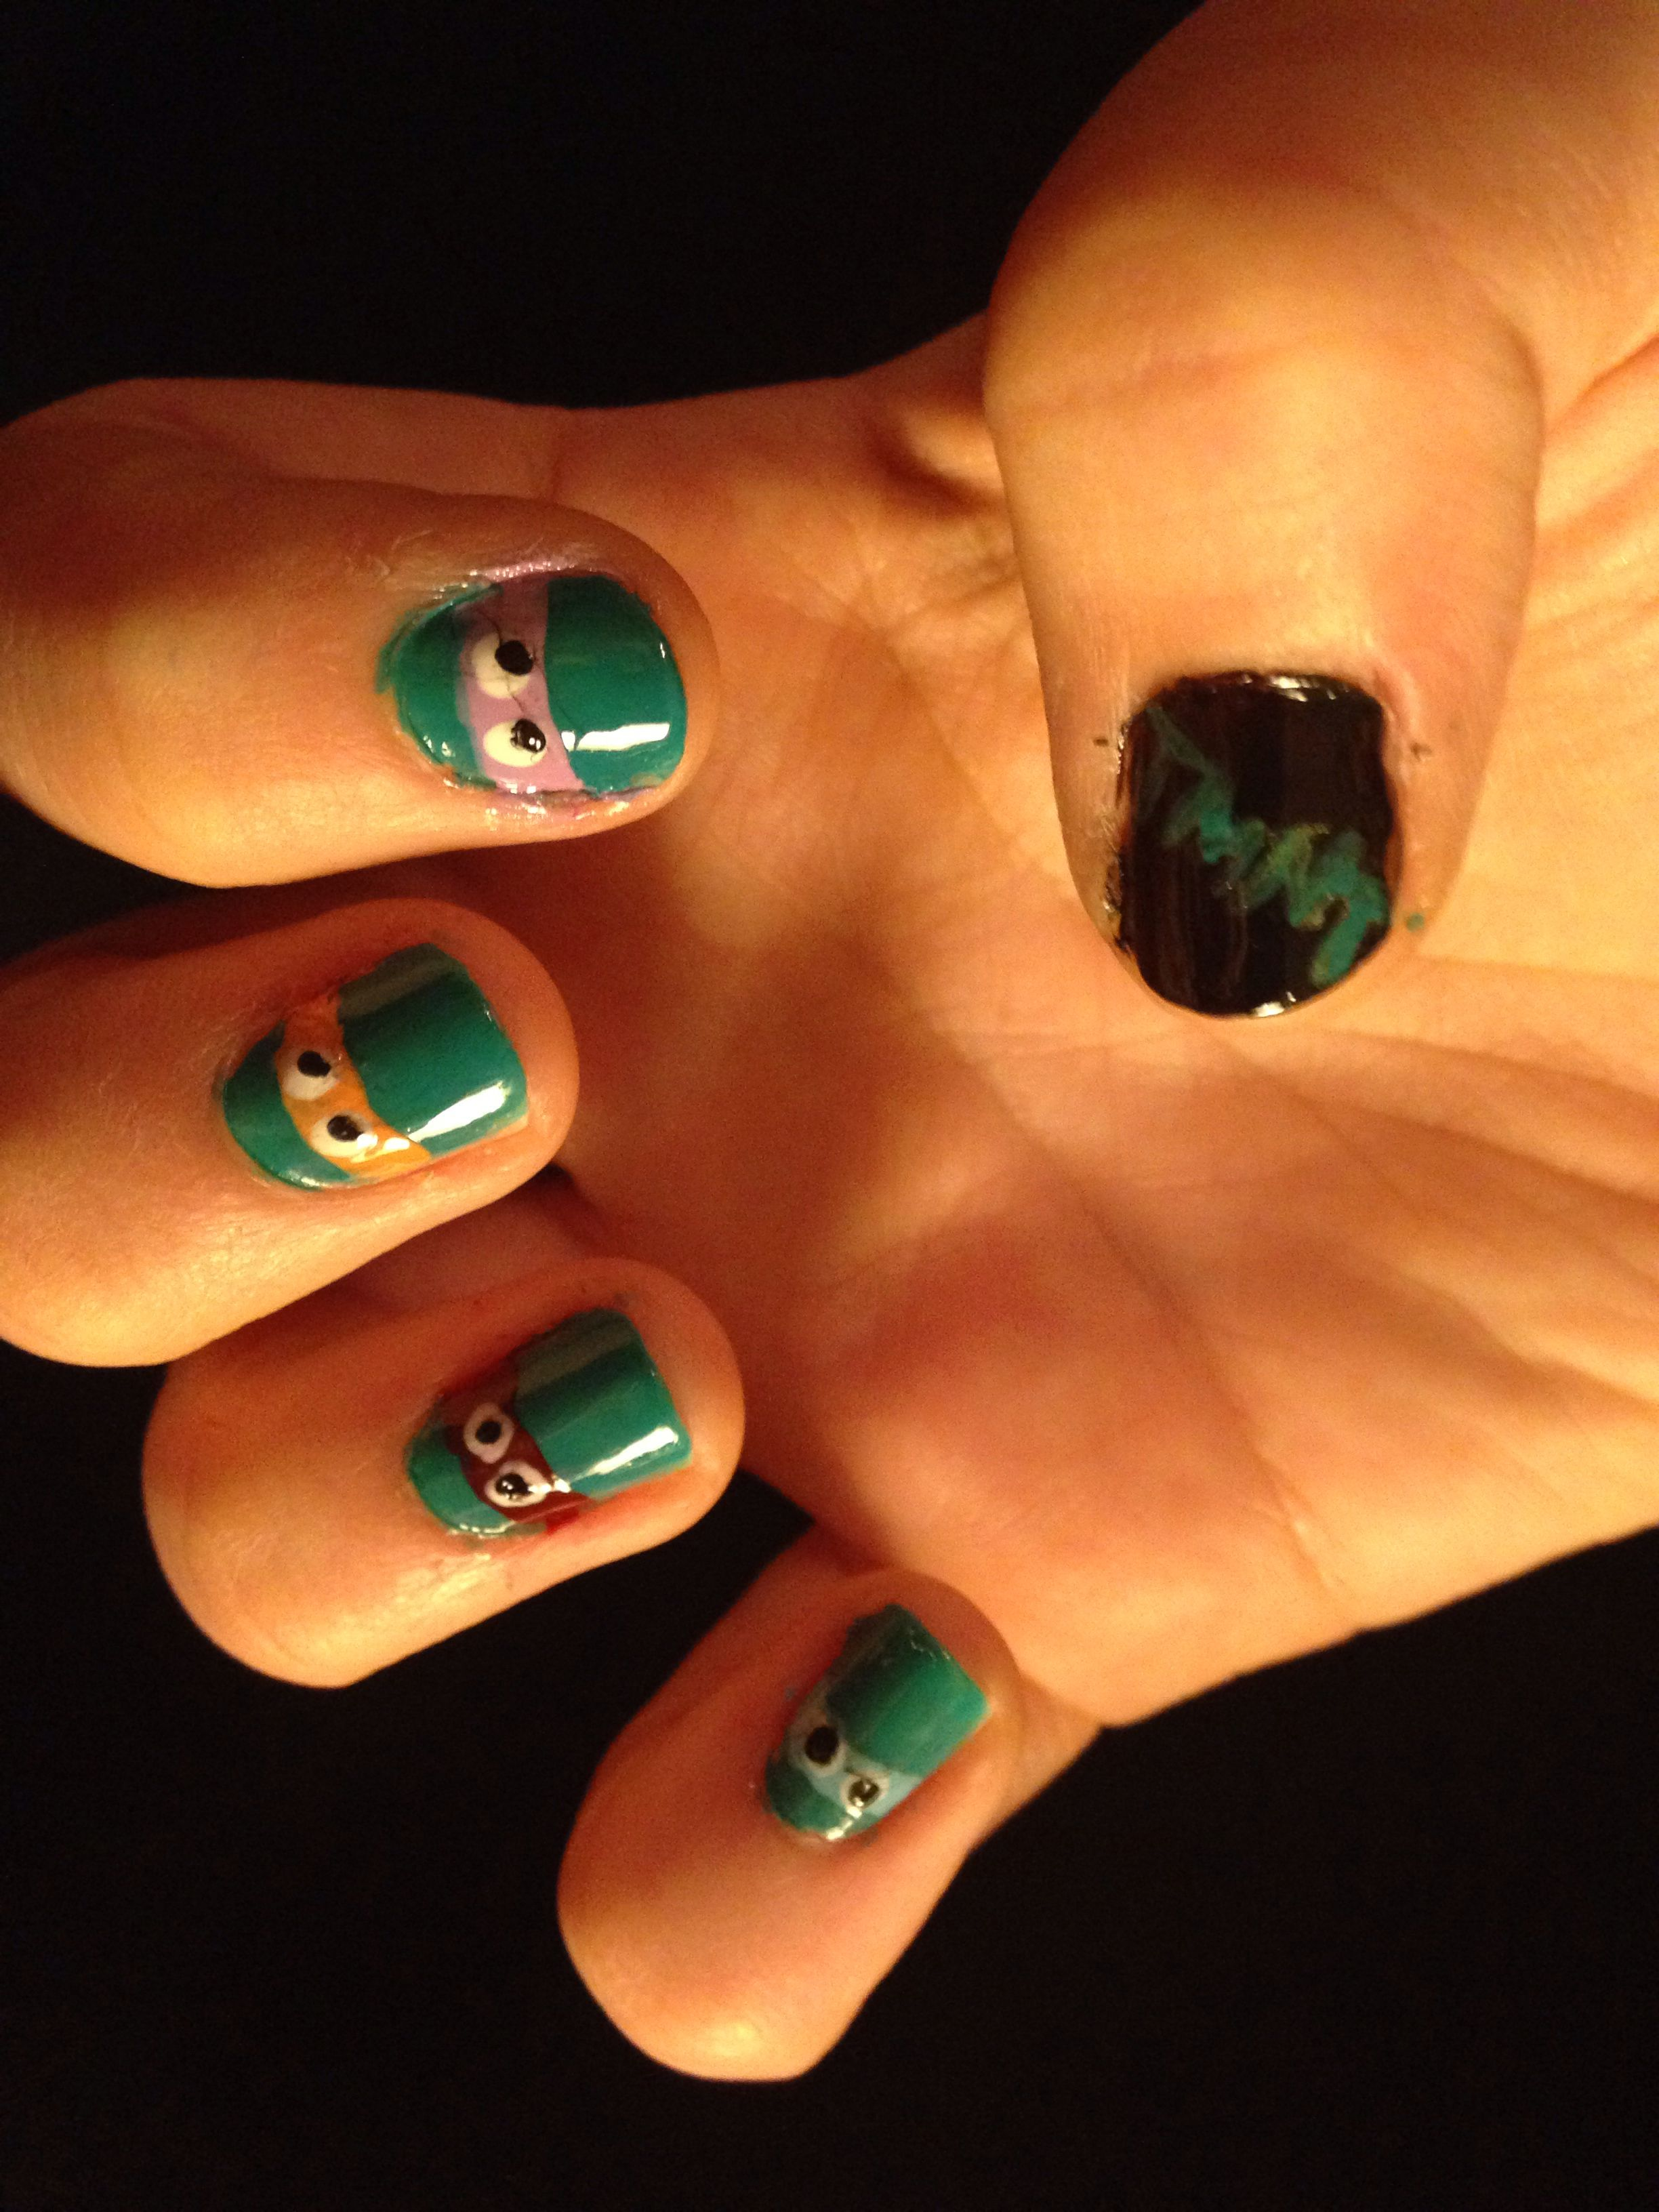 Teenager Easy Nail Art With Tape Step By Step ~ Nail Art Ideas